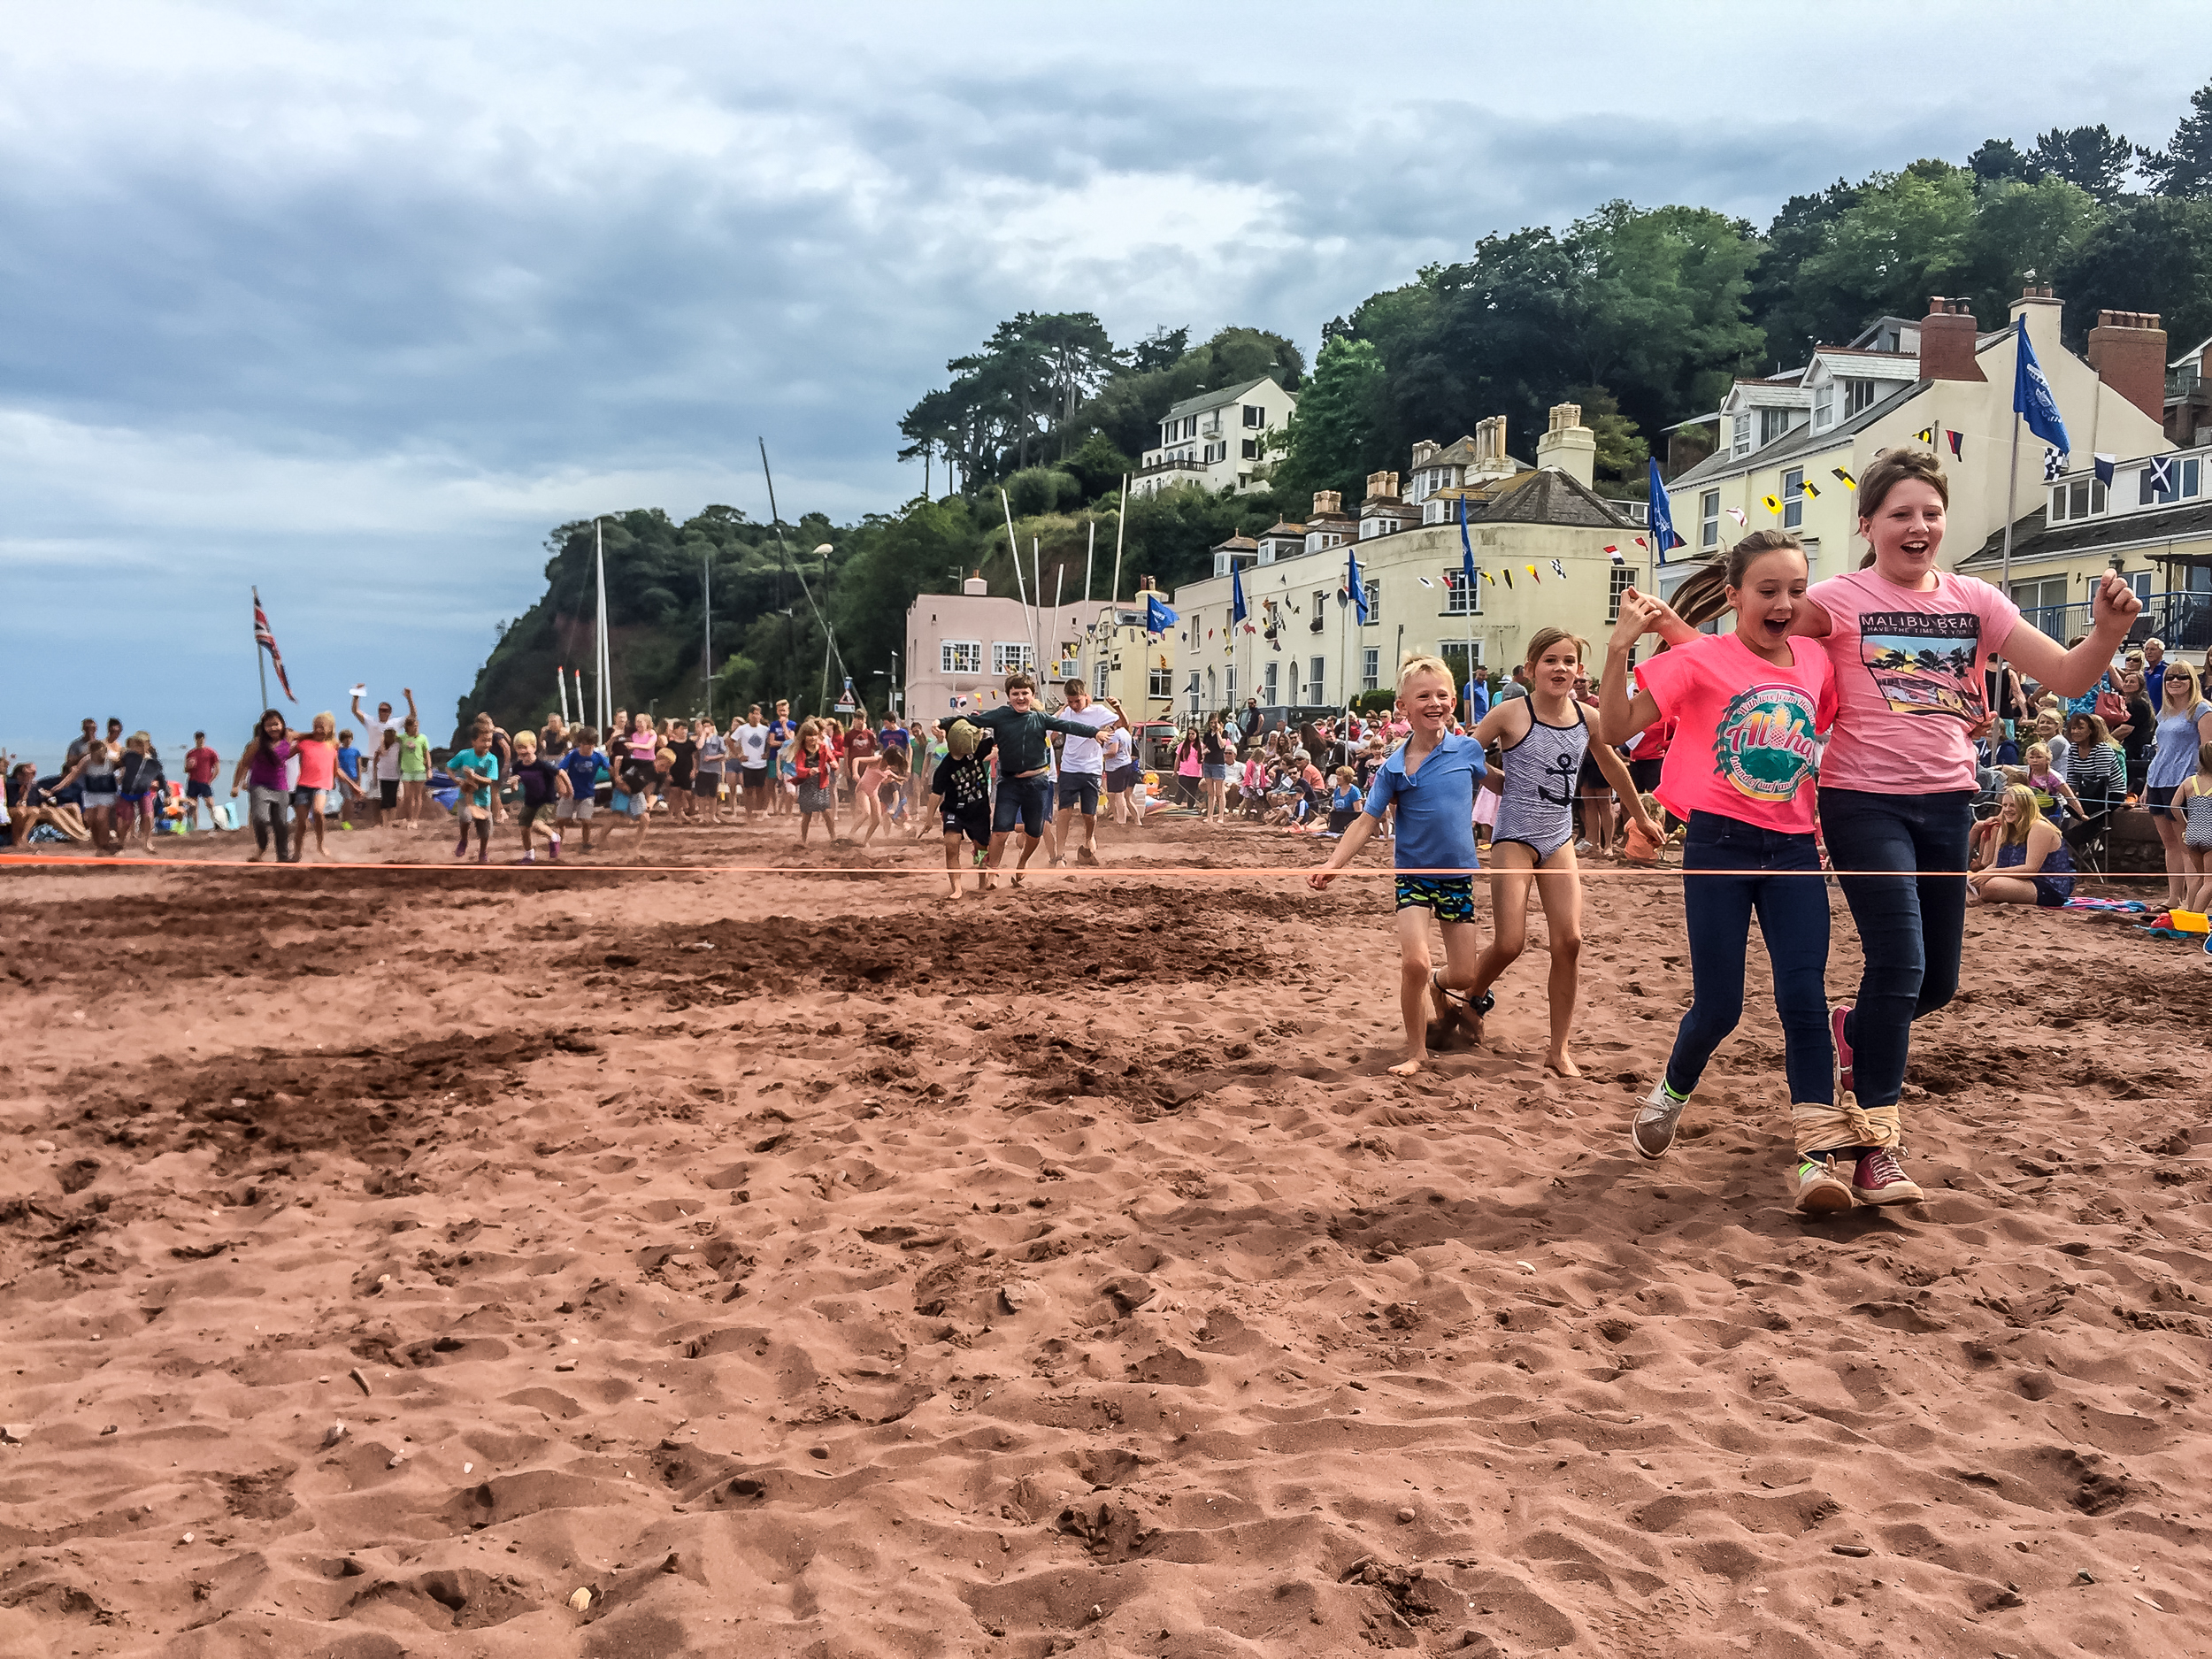 Beach sports - Always entertaining to watch and equally fun to take part, a variety of beach sports from the traditional three legged and egg and spoon race to the wife or partner carrying race! There's races for everyone from the under three year old to the grandparents!